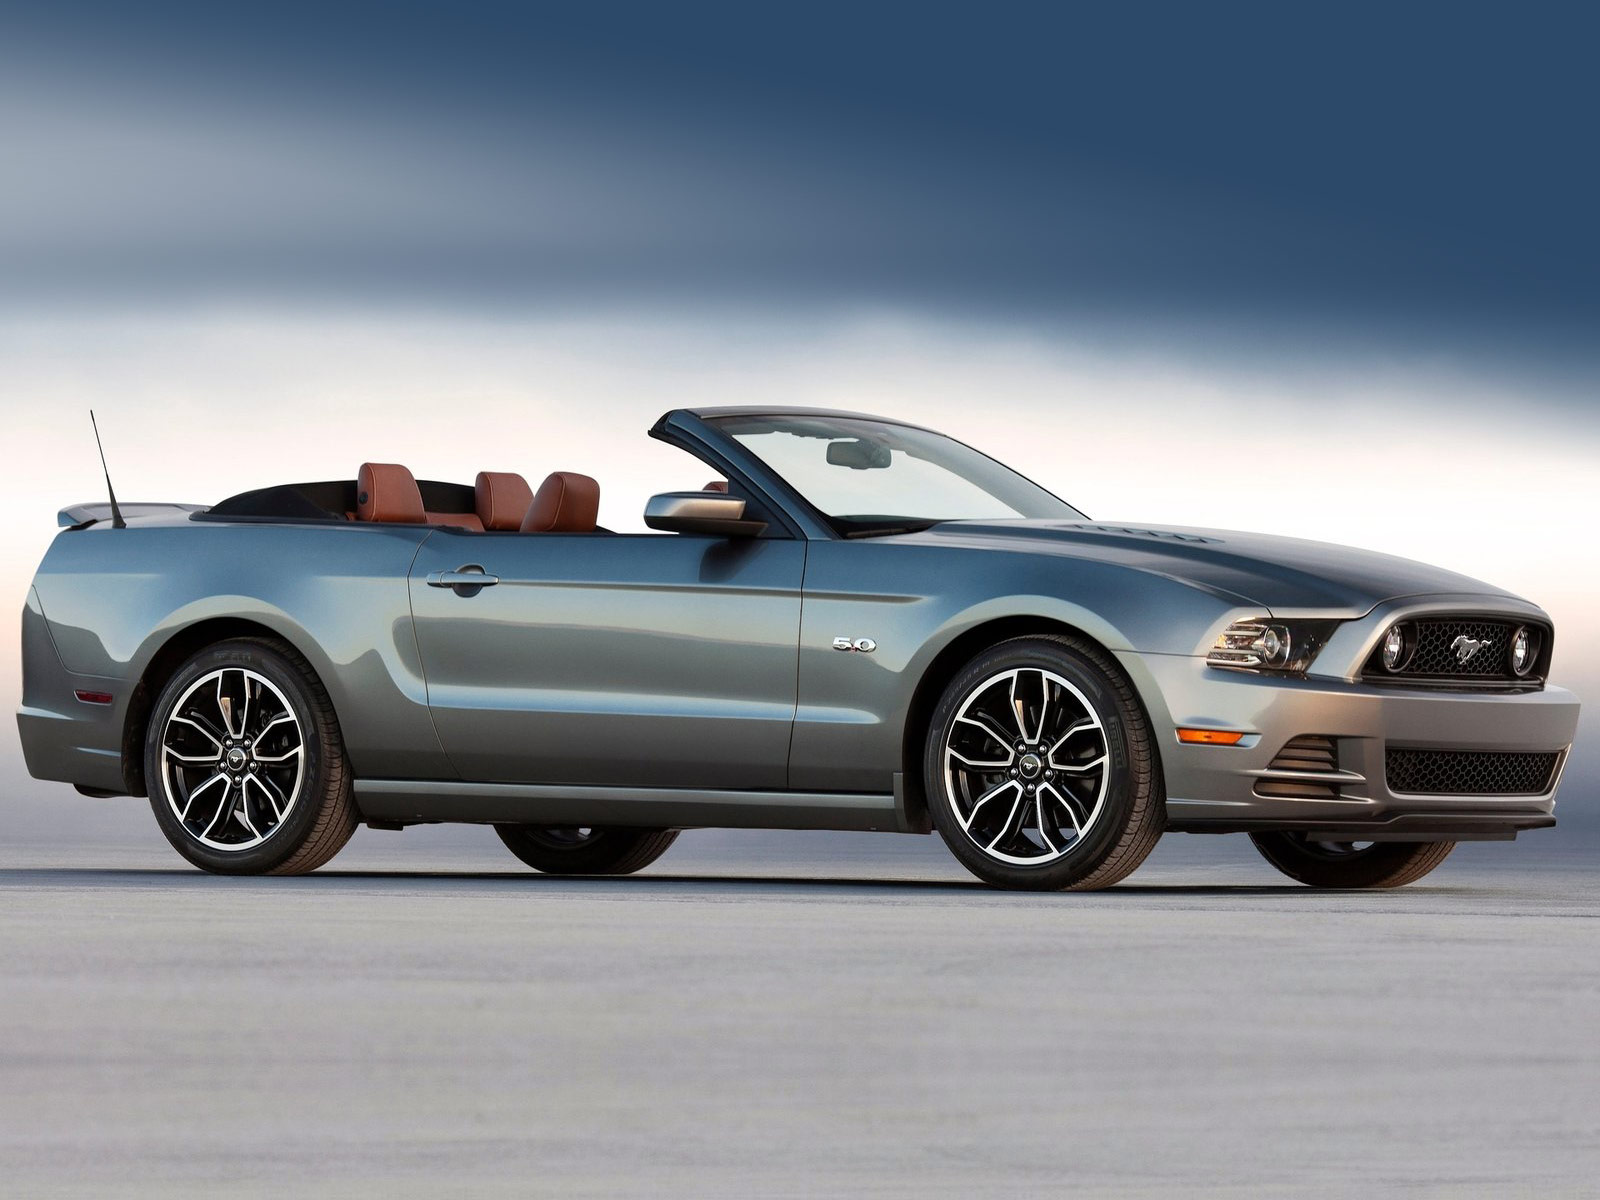 2012 Mustang V6 For Sale >> Gambar Mobil Ford Mustang GT 2013